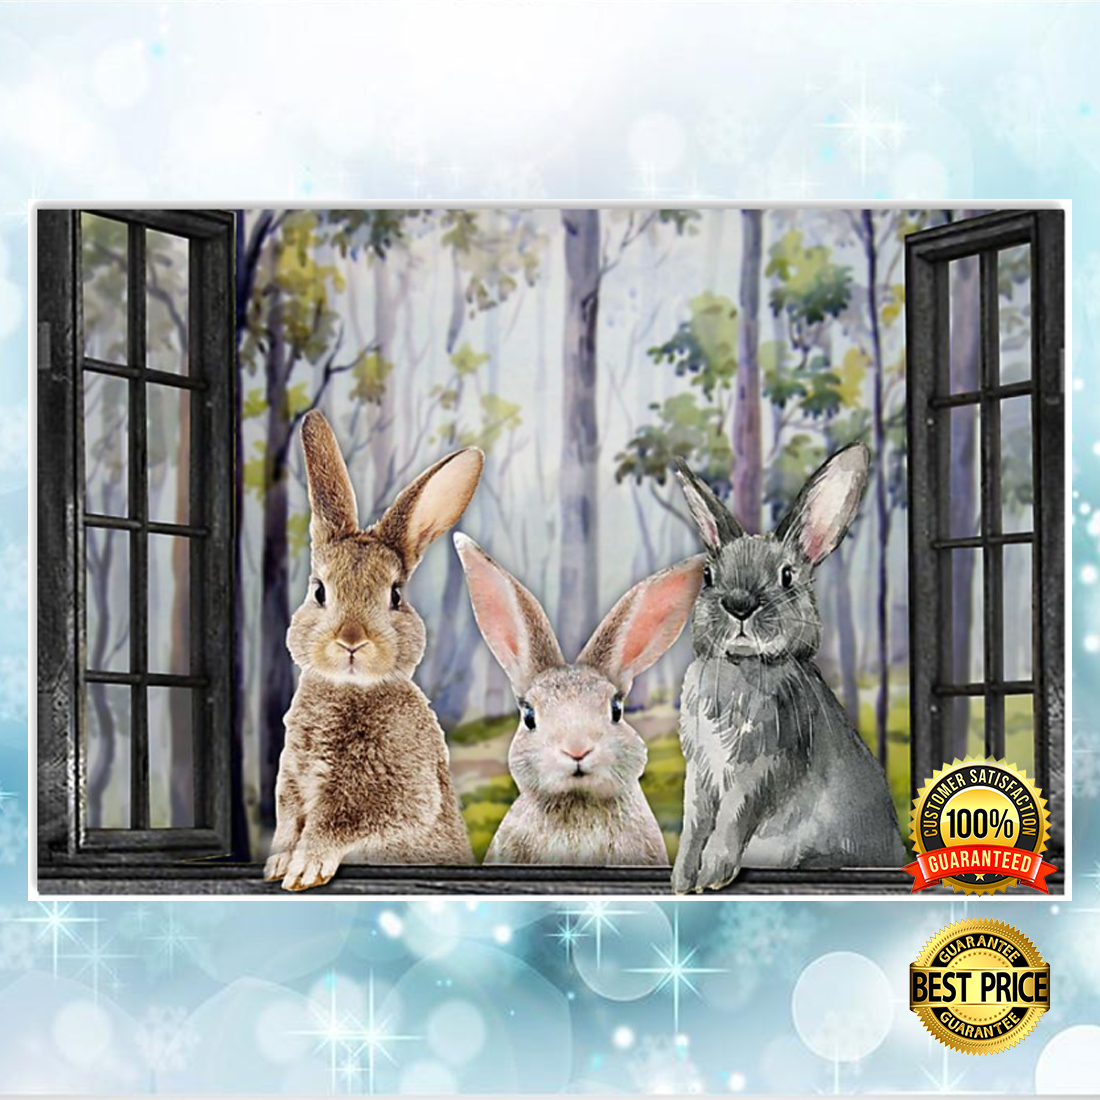 Rabbits by the window poster 5